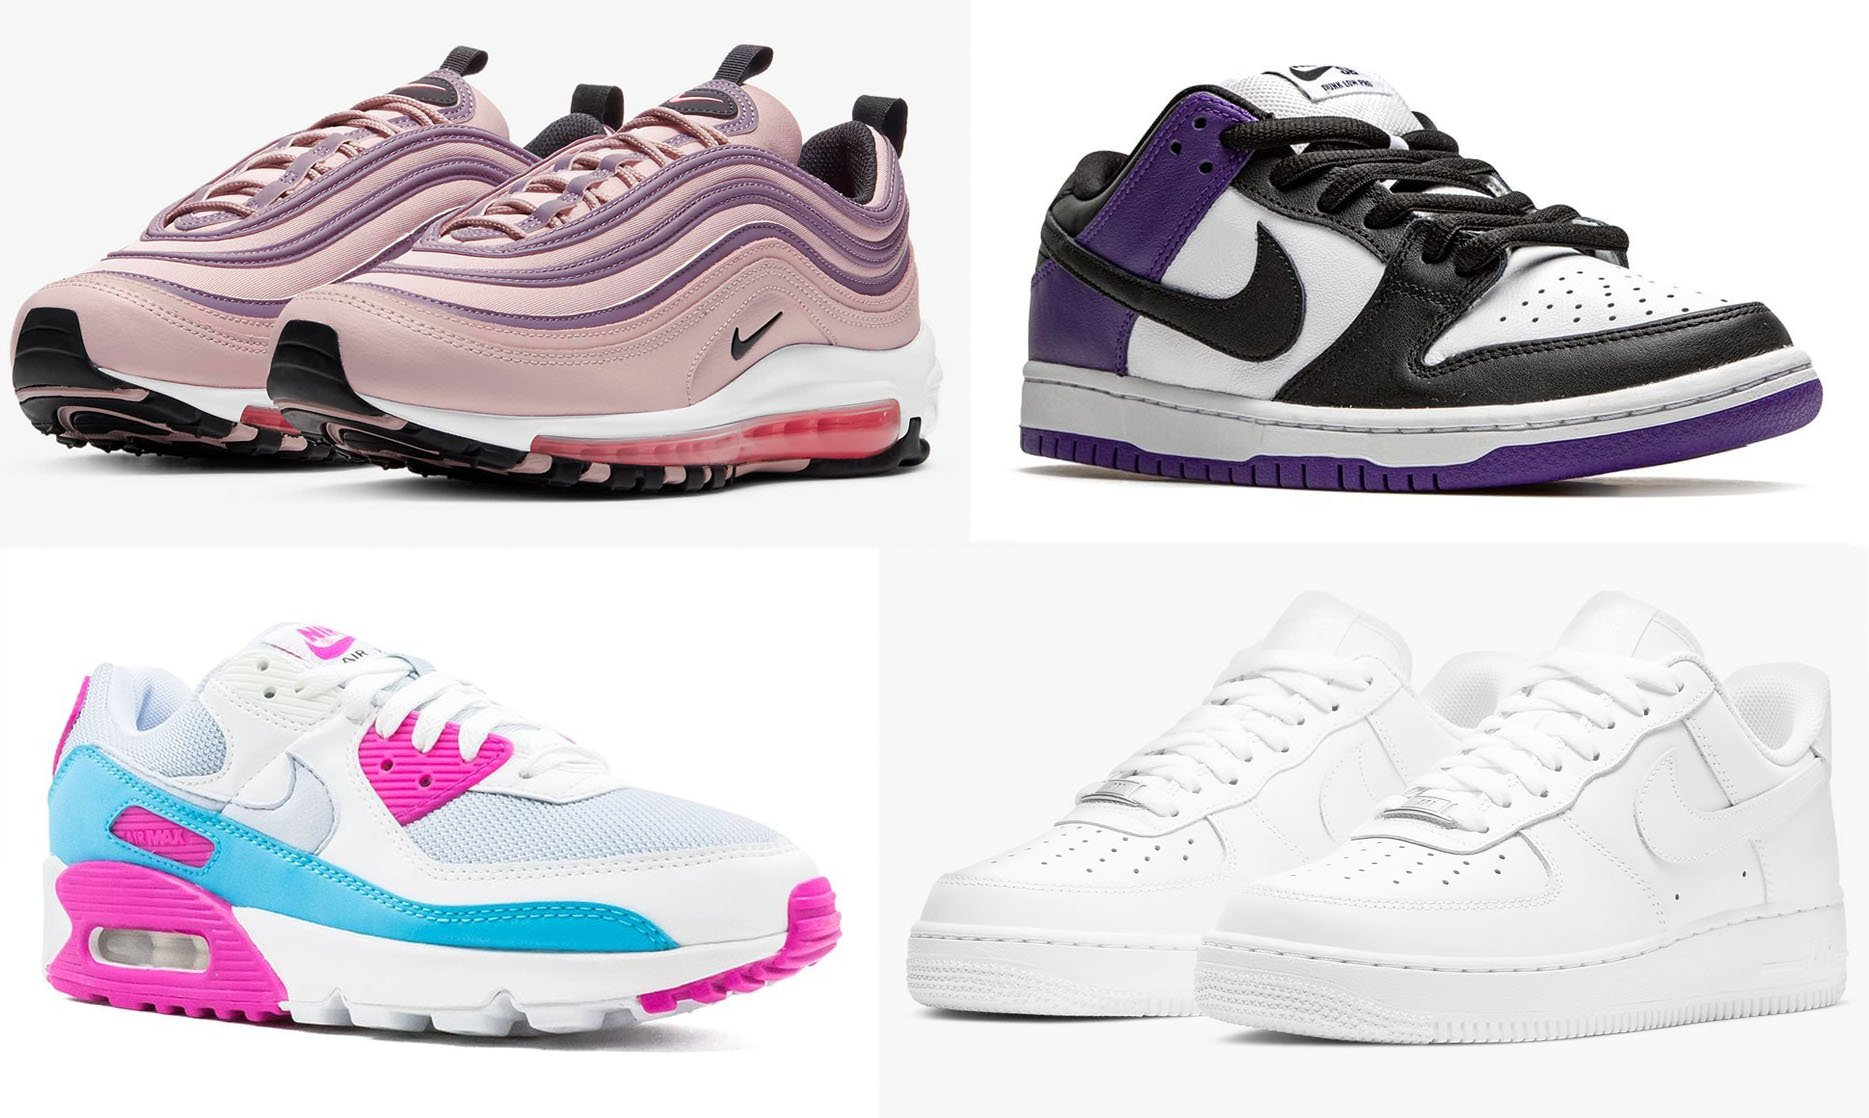 Some of the most popular Nike shoes of all time include the Air Max 97, Dunk Low SB, Air Max 90, and Air Force 1